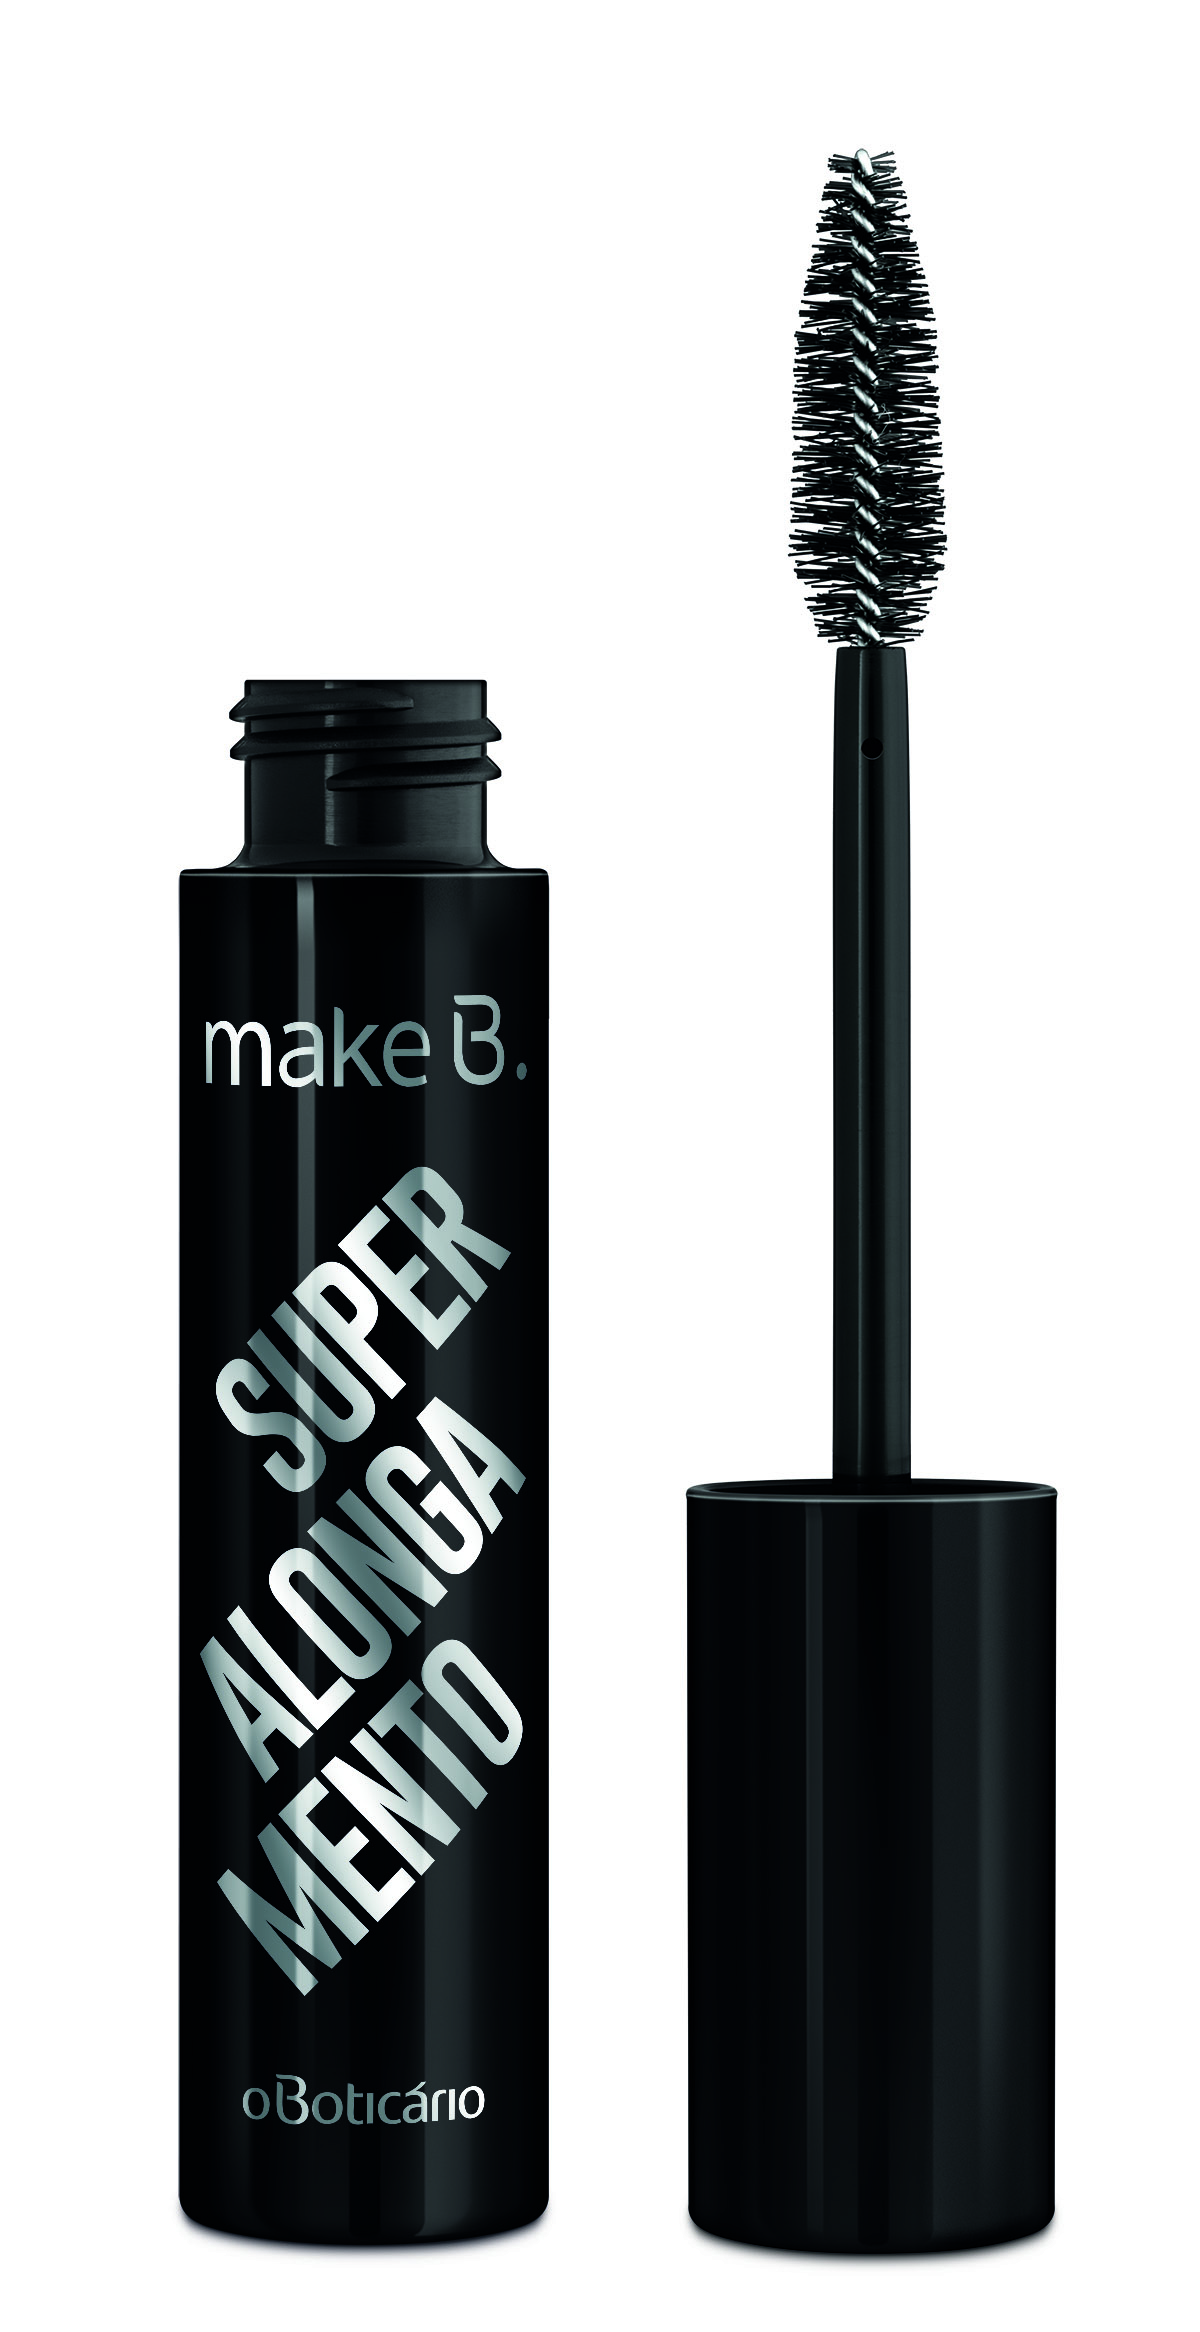 O Boticário_Make B. Super Alongamento_R$54.90